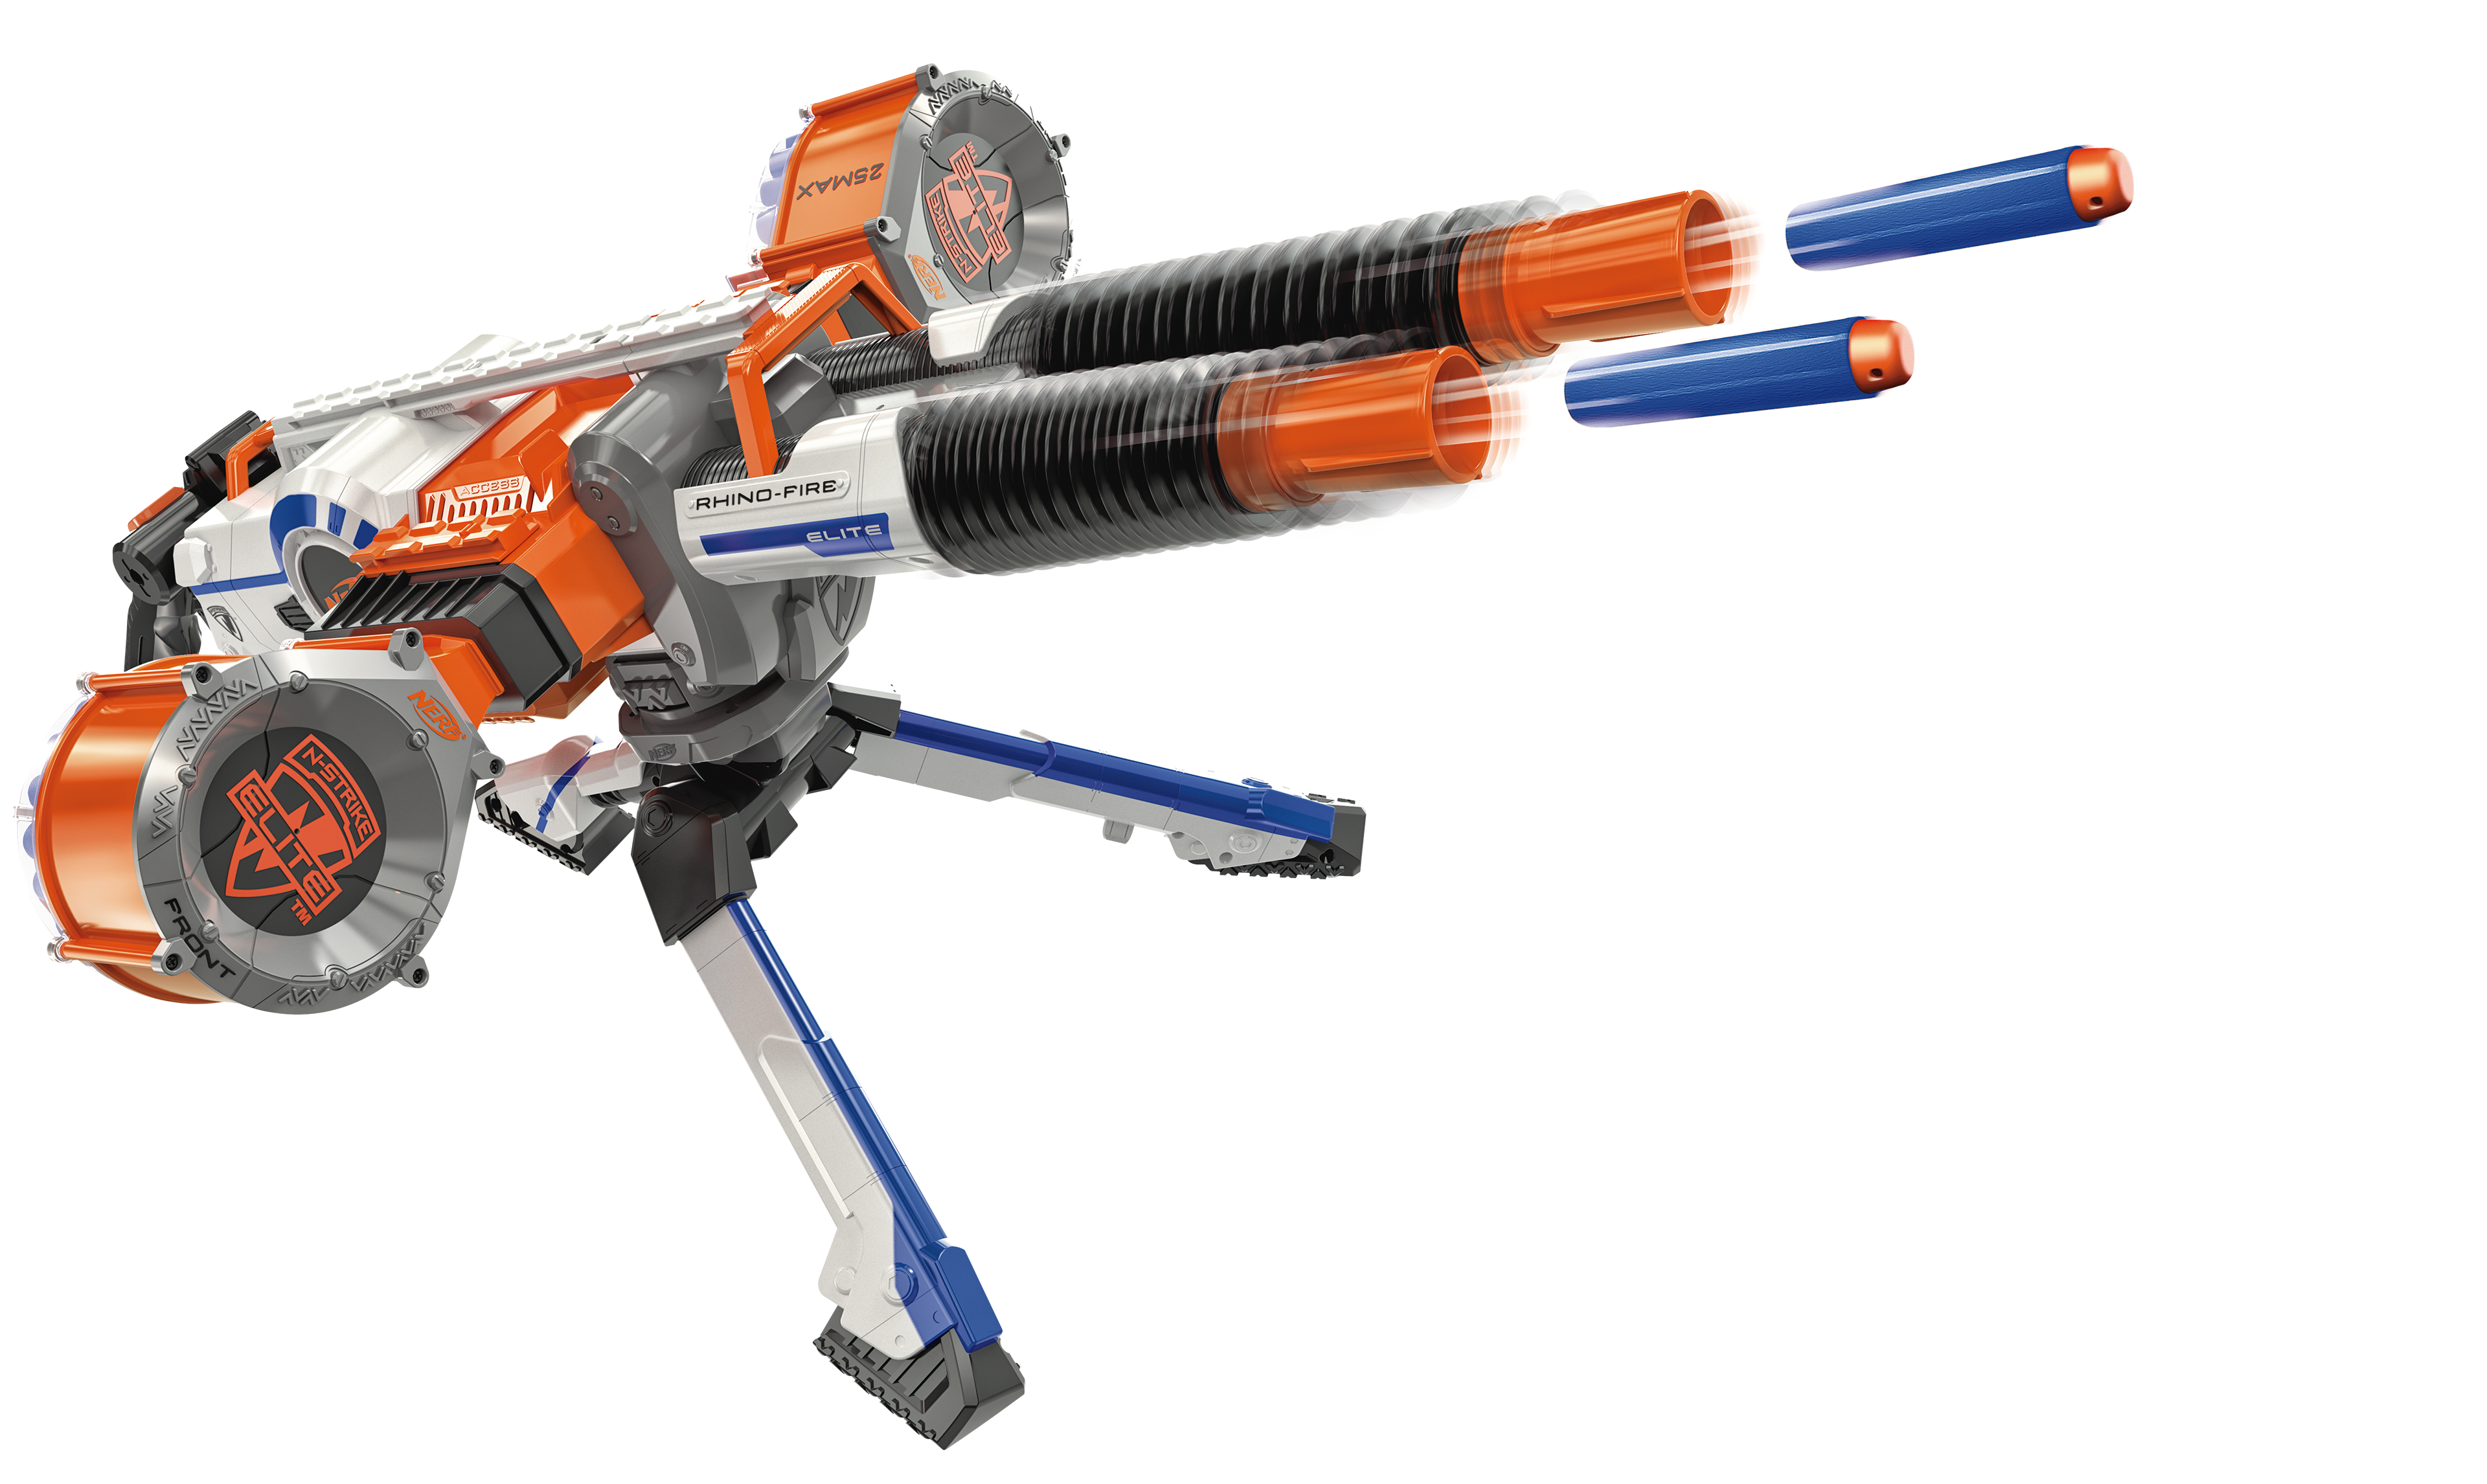 Anyway, the first two Nerf Doomlands 2169 guns are the Vagabond and the  Lawbringer, which already means they have some of the best names in Nerf  since ...